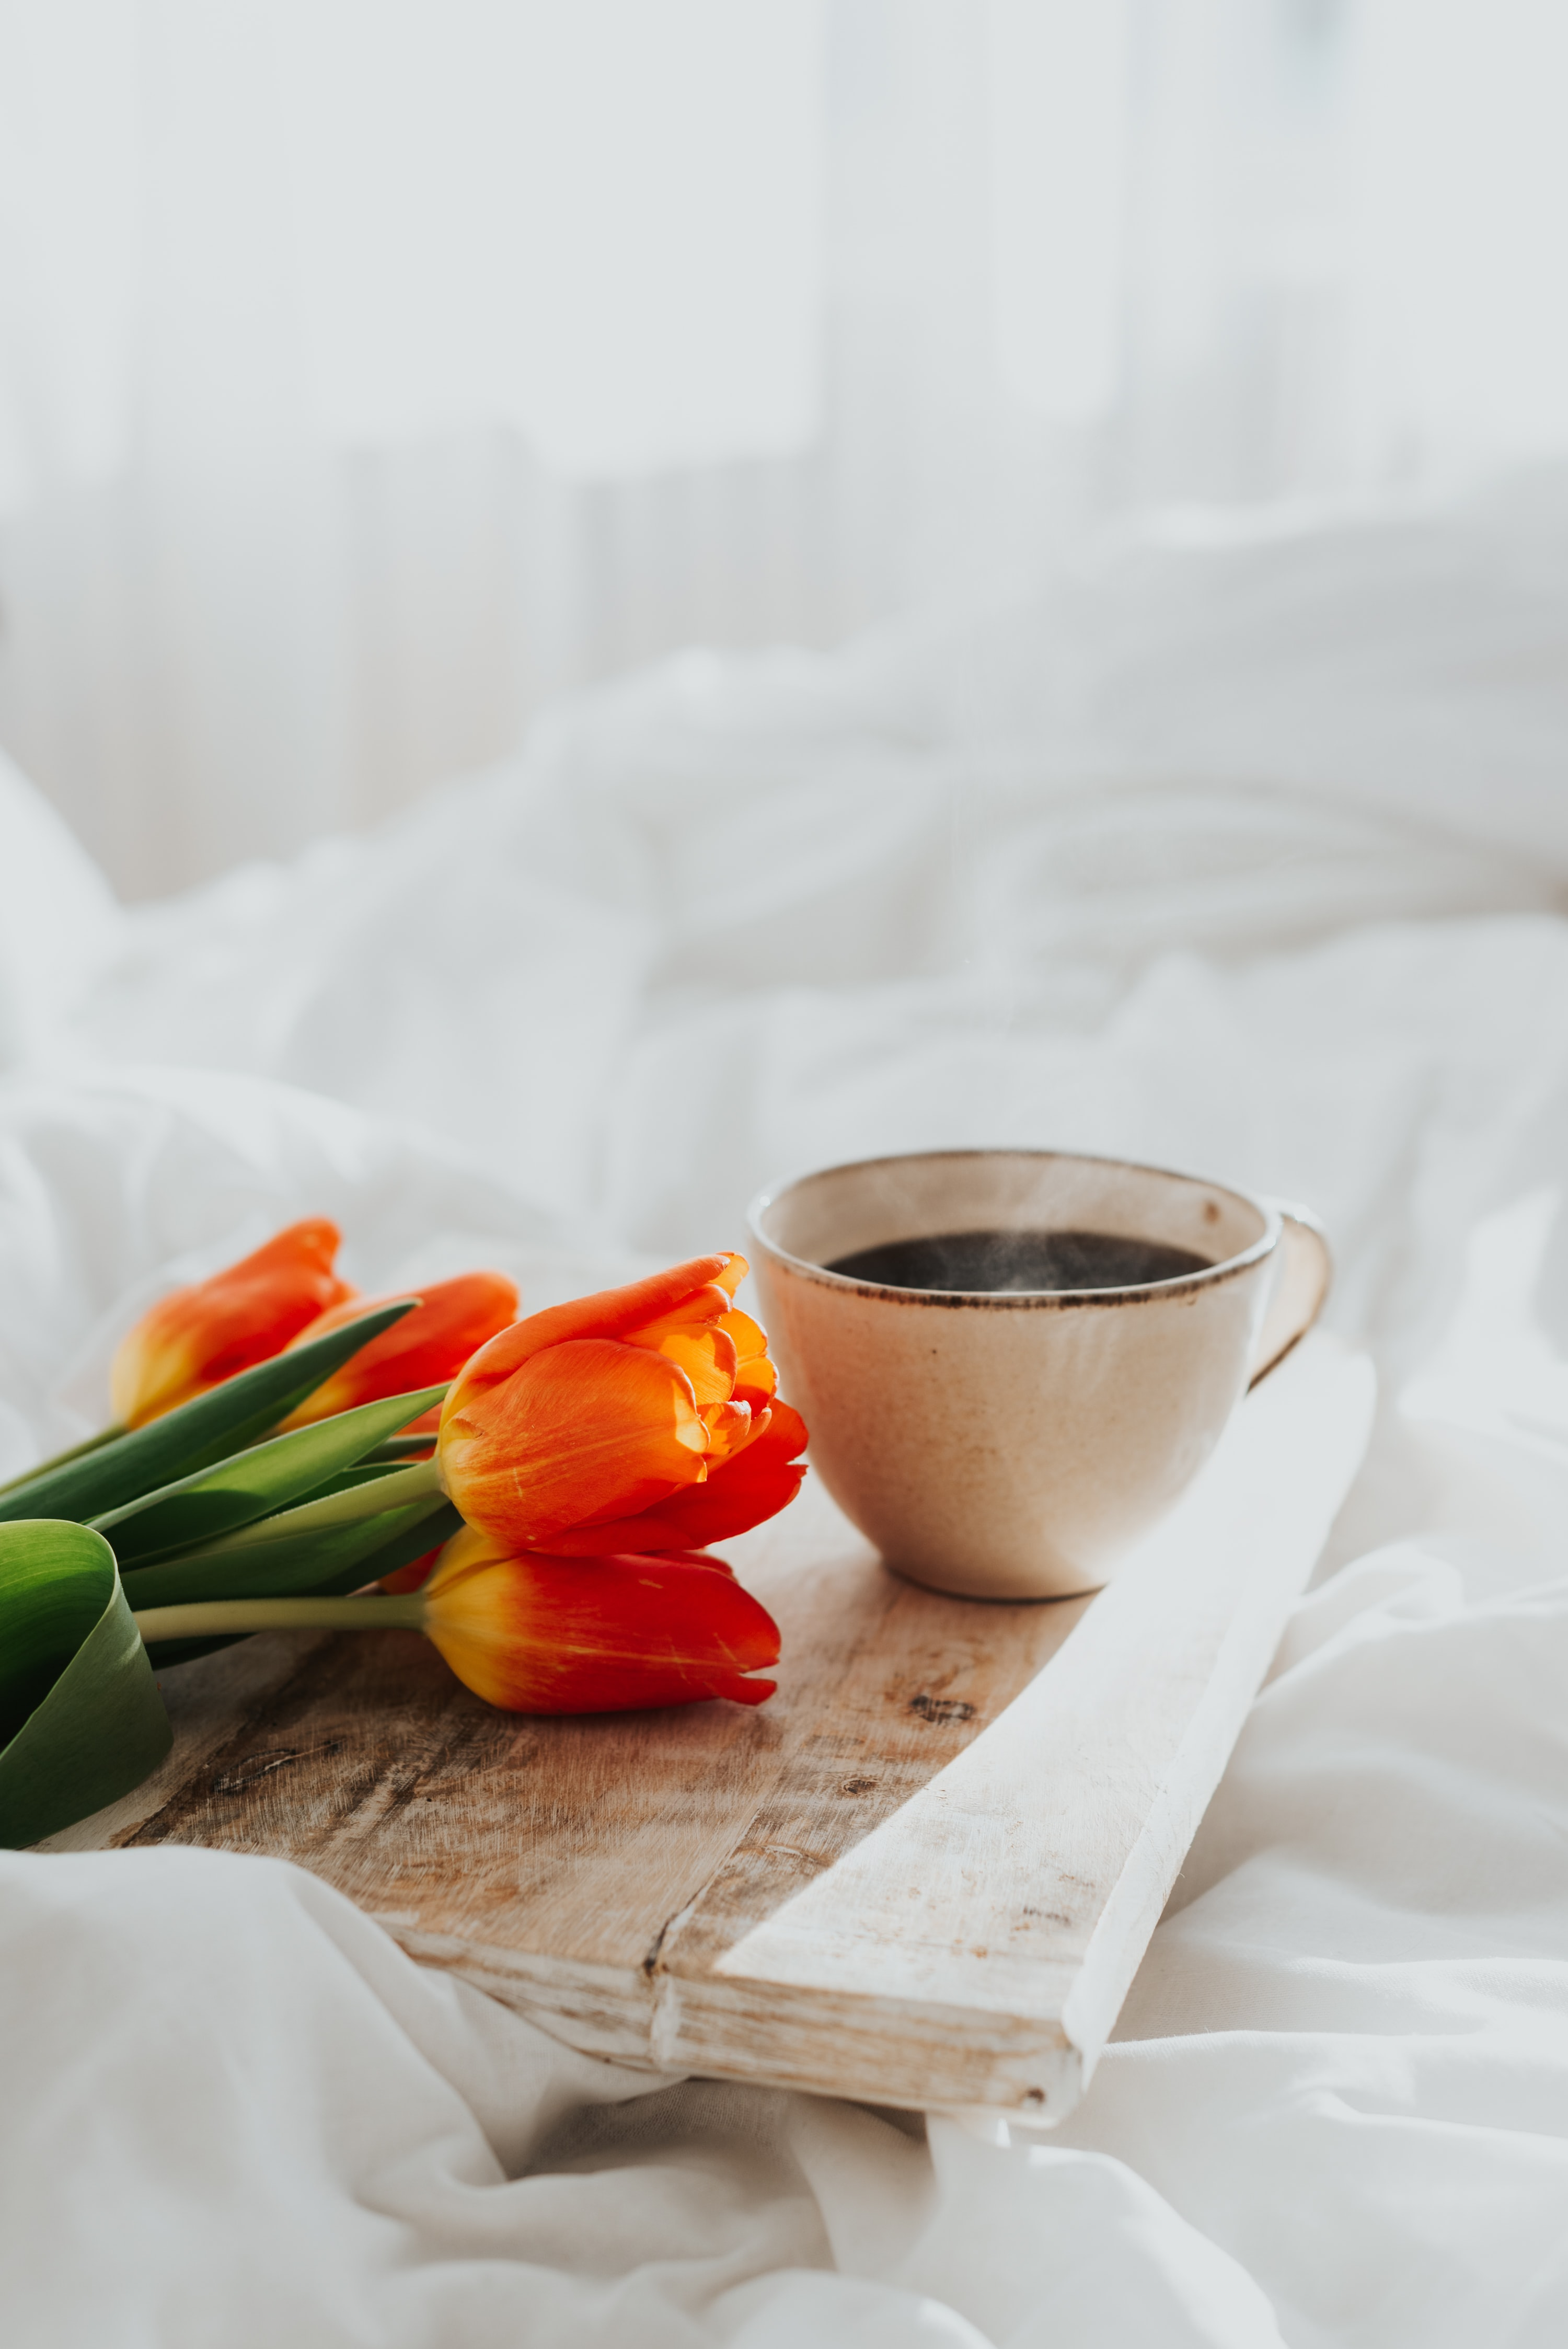 61930 download wallpaper Miscellanea, Miscellaneous, Cup, Mug, Coffee, Breakfast, Flowers, Tulips screensavers and pictures for free